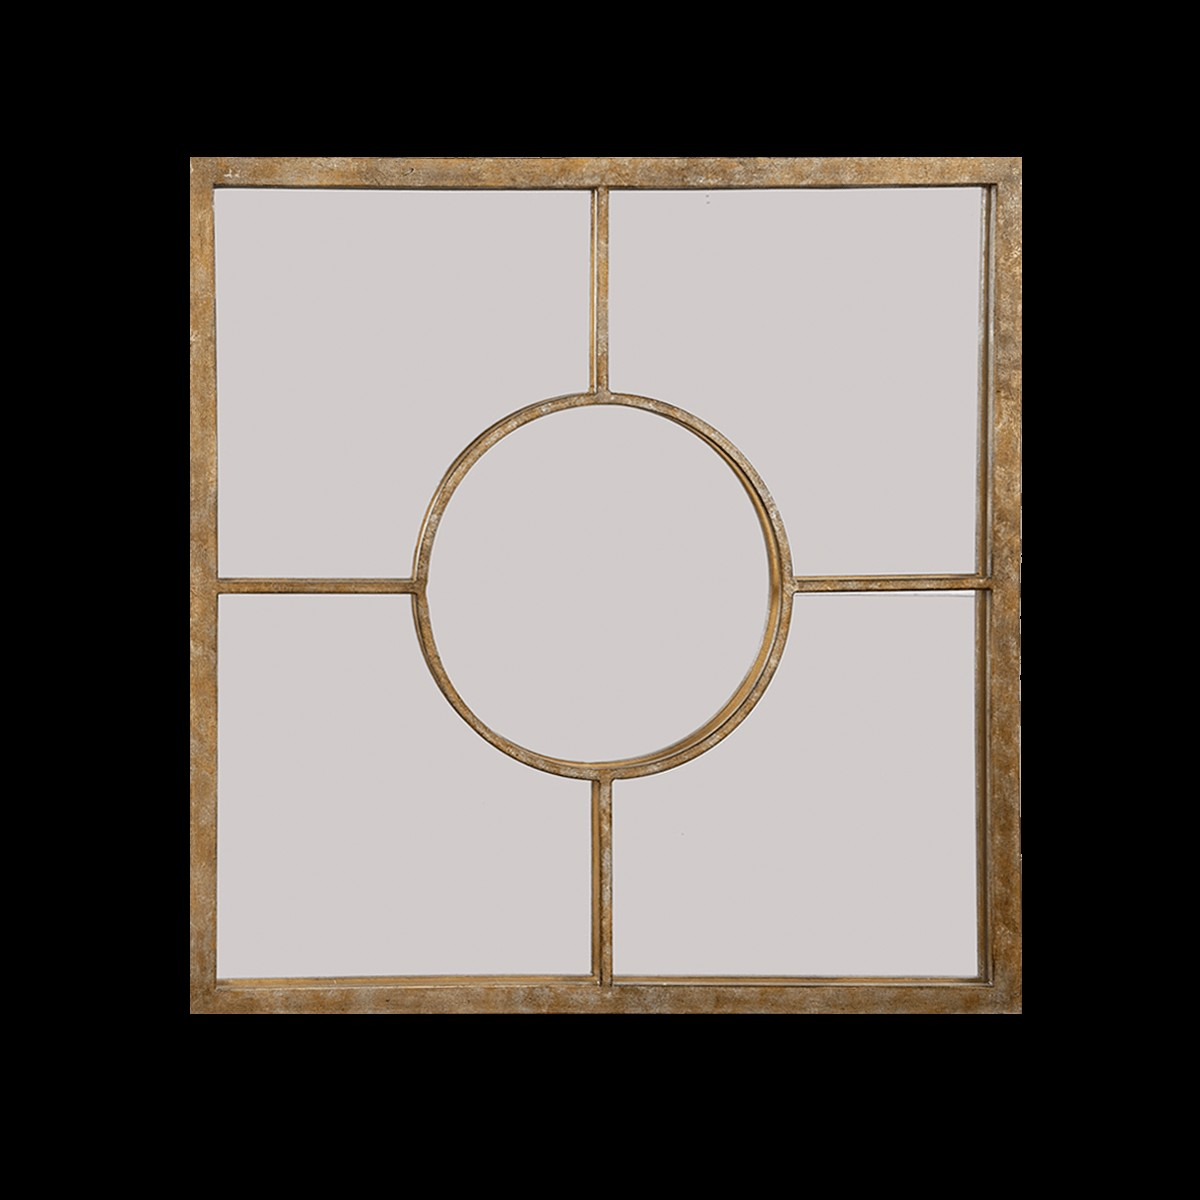 James Mottled Gold Square Decorative Wall Mirror By Old